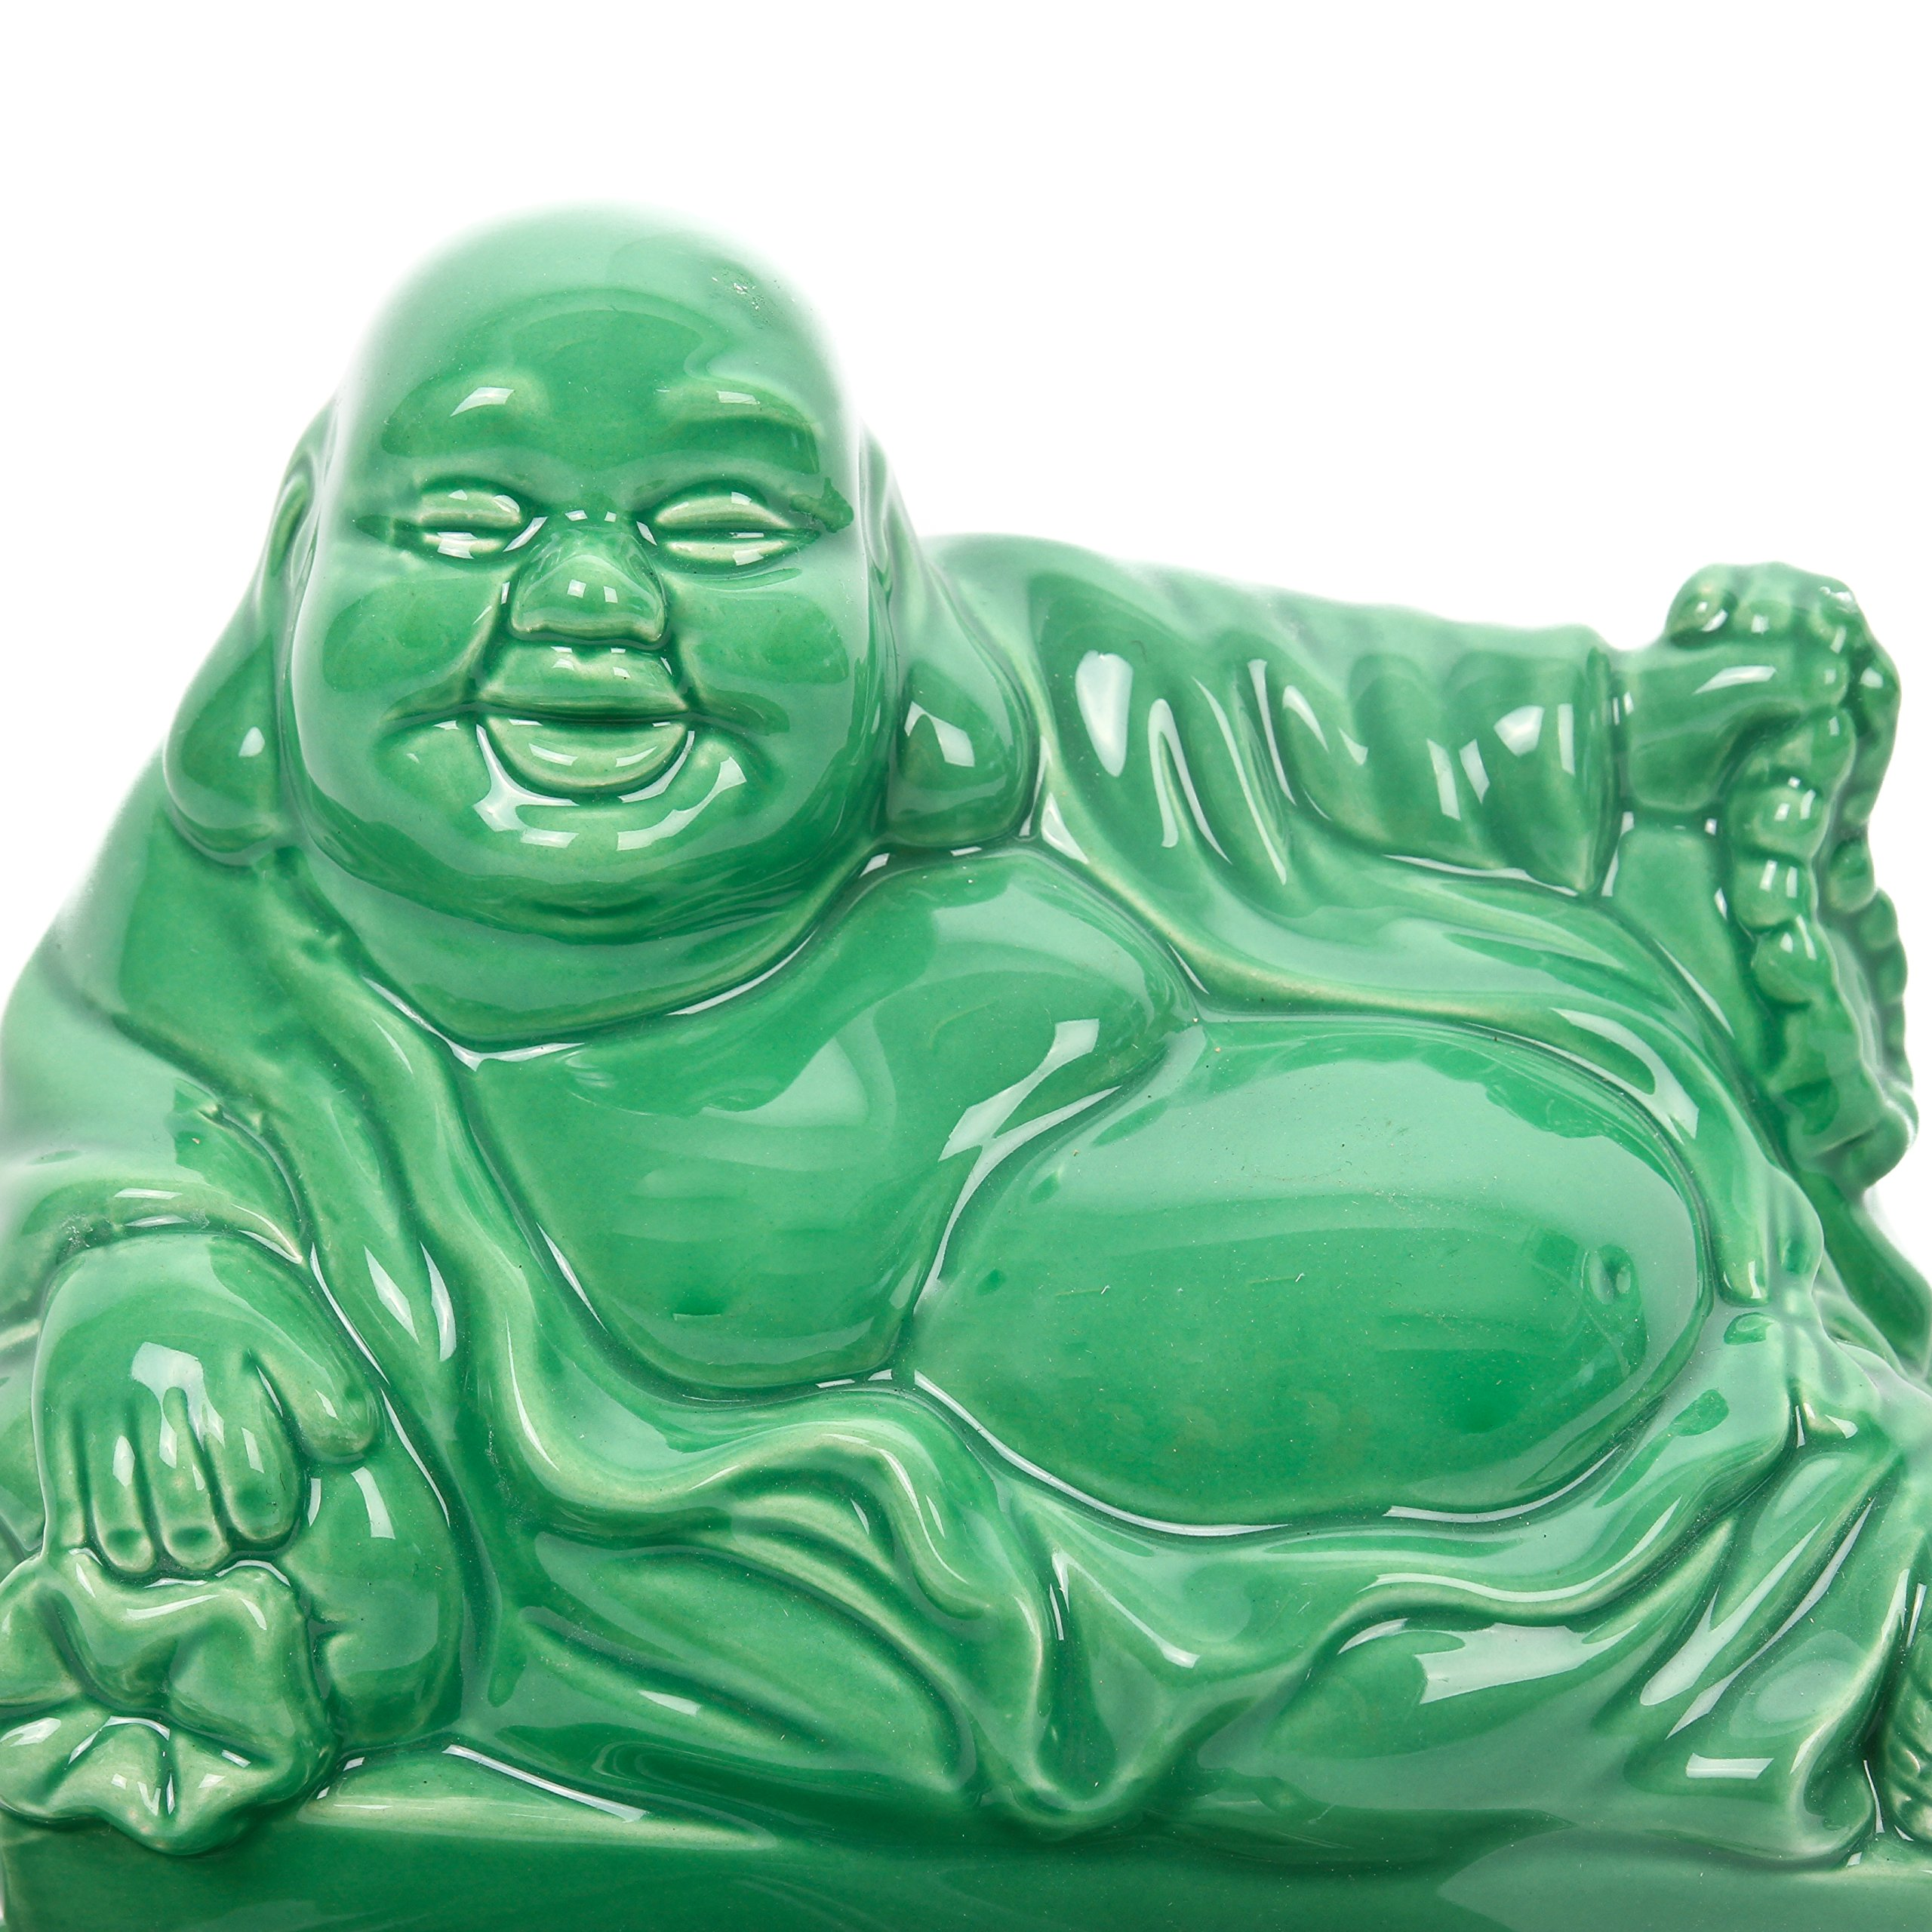 CKB Ltd Buddha Budai Decoration Vintage Home Butter Dish - Jade Green - Novelty Cool Tray With Lid